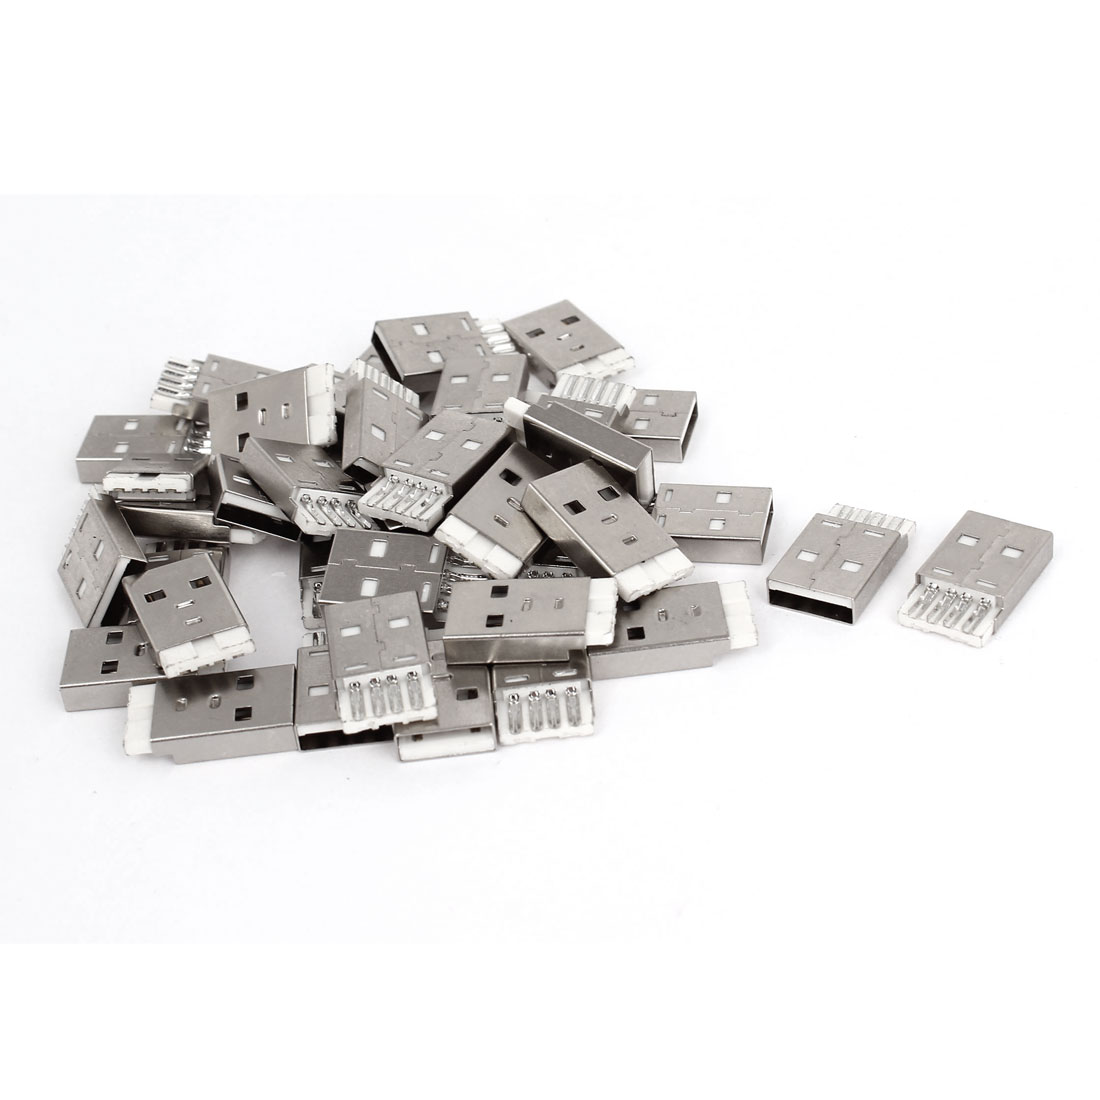 40 Pcs Spare Parts Type A Male USB 2.0 4 Pin Solder Socket Connectors